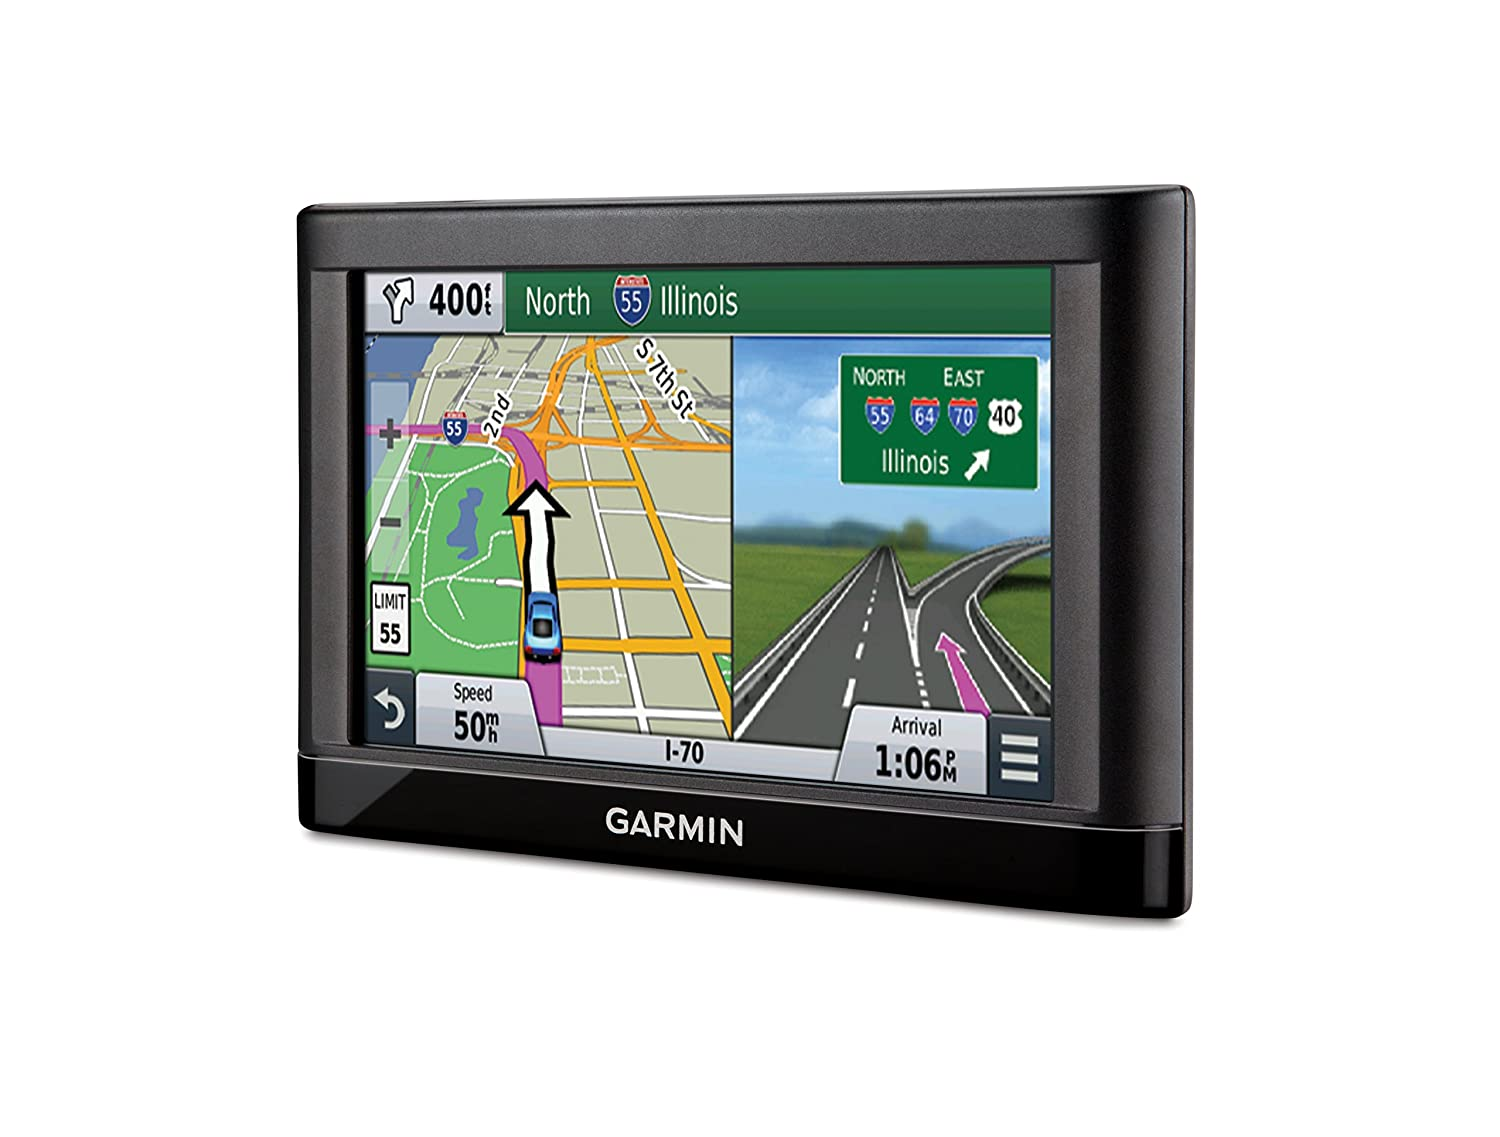 Amazoncom Garmin Nüvi LMT GPS Navigators System With Spoken - Us highway map with speed limits